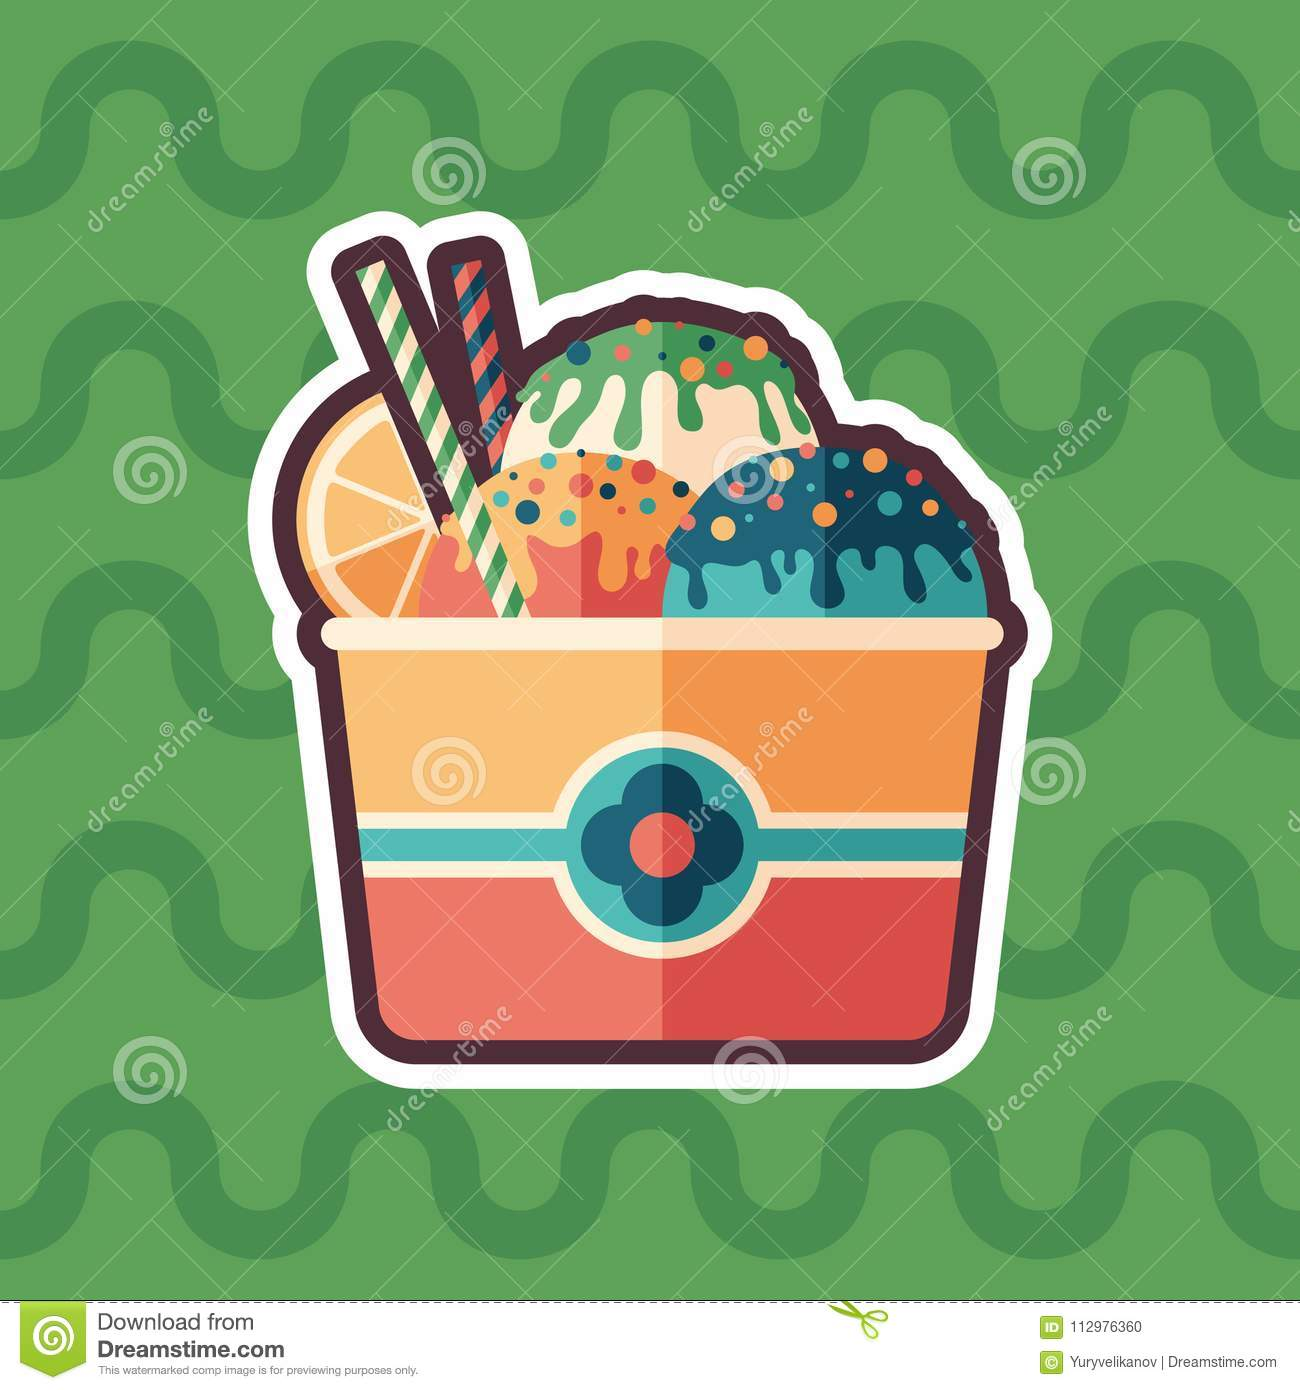 Fruit ice cream sticker flat icon with color background.